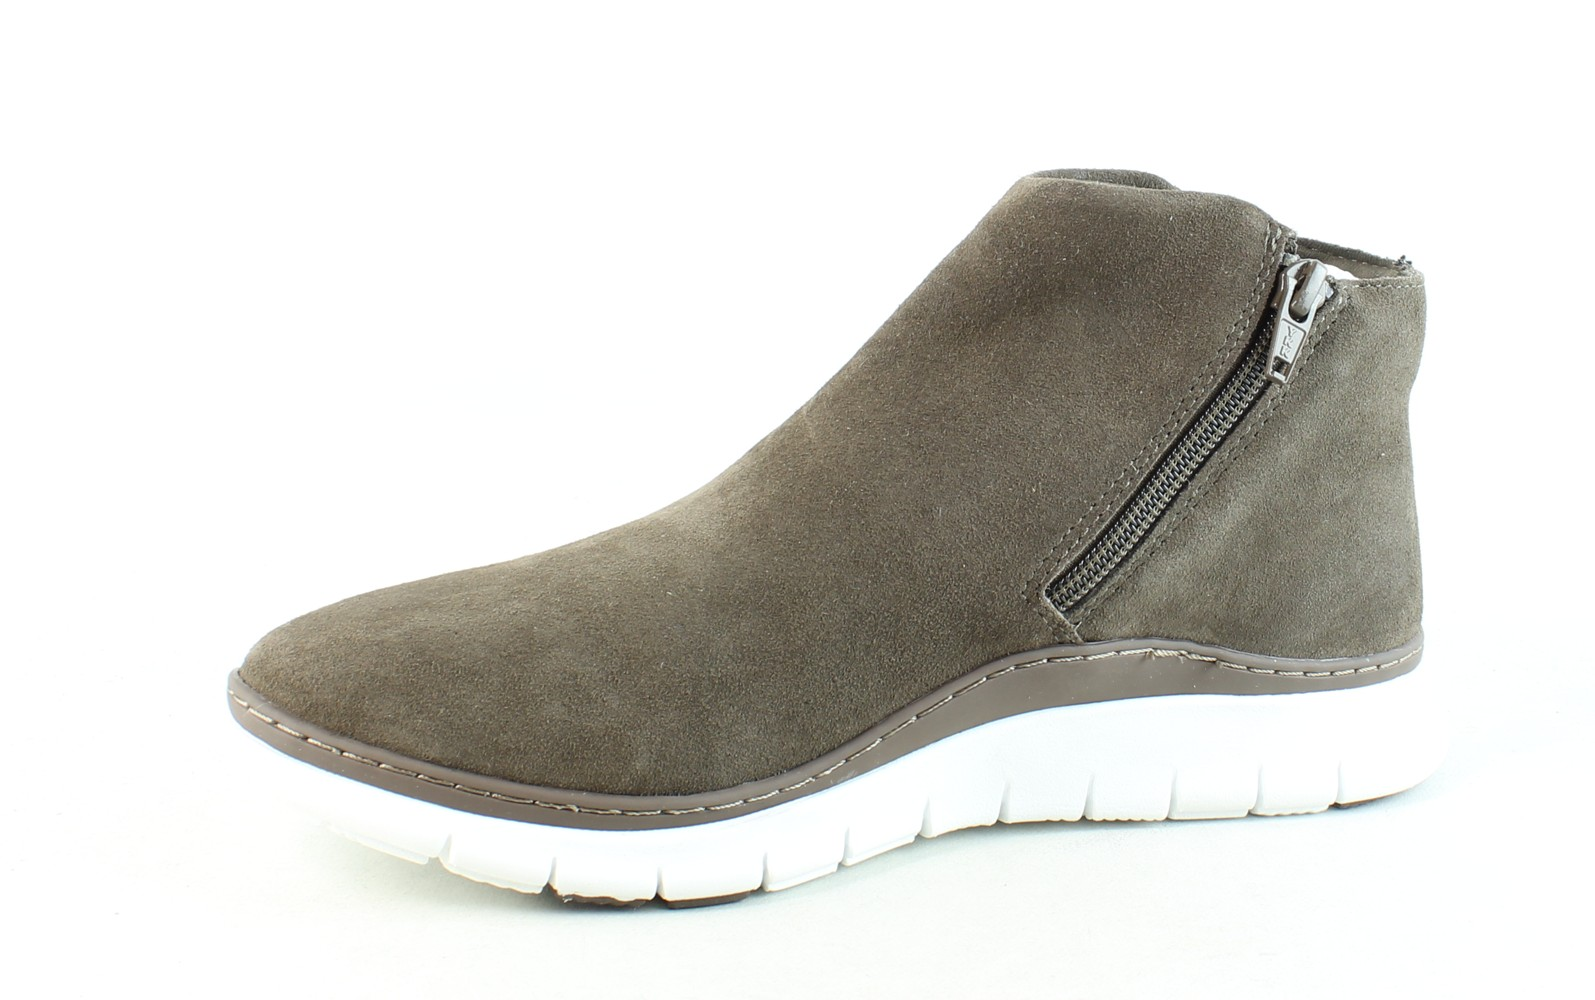 Vionic-Womens-Fresh-Dylan-Suede-Side-Zip-Casual-Comfort-Ankle-Boots thumbnail 9